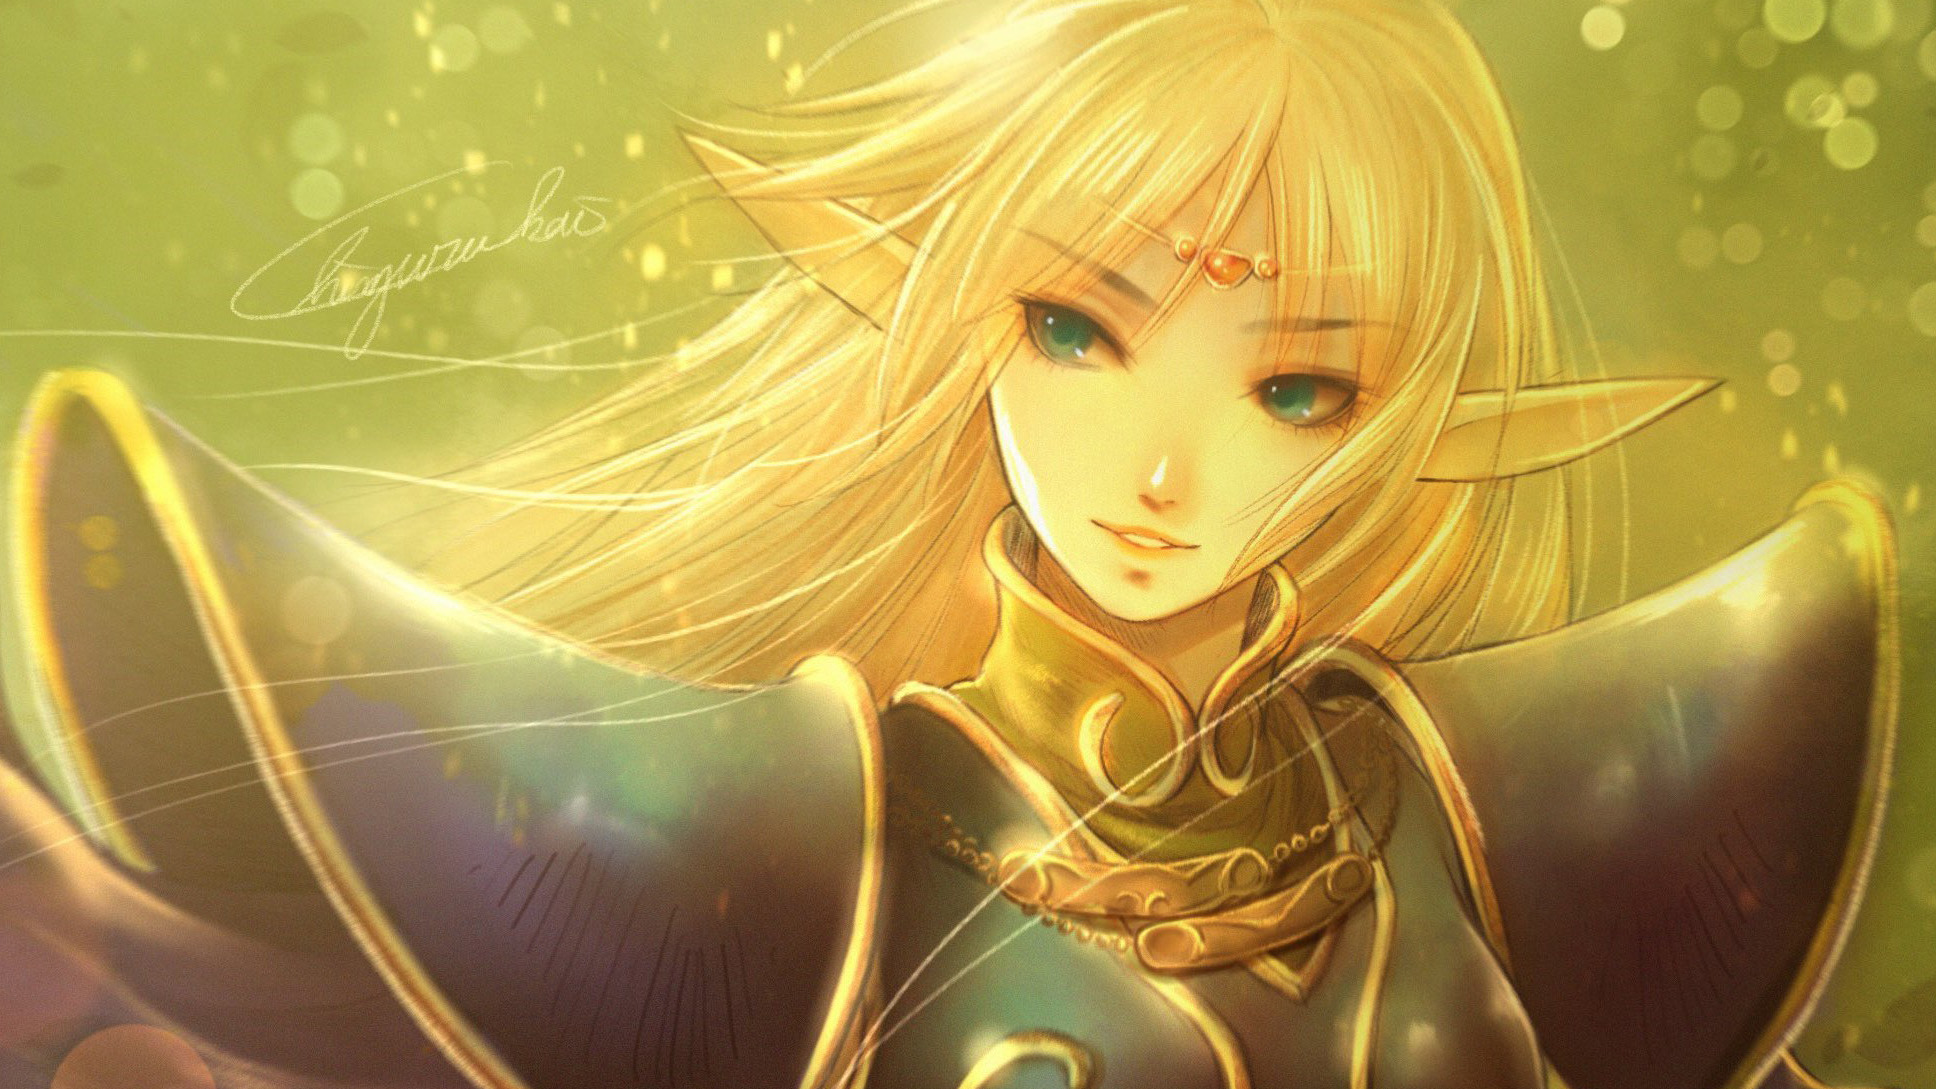 Record of Lodoss War is a gorgeous metroidvania featuring a cool elf, her bow, and bullet hell